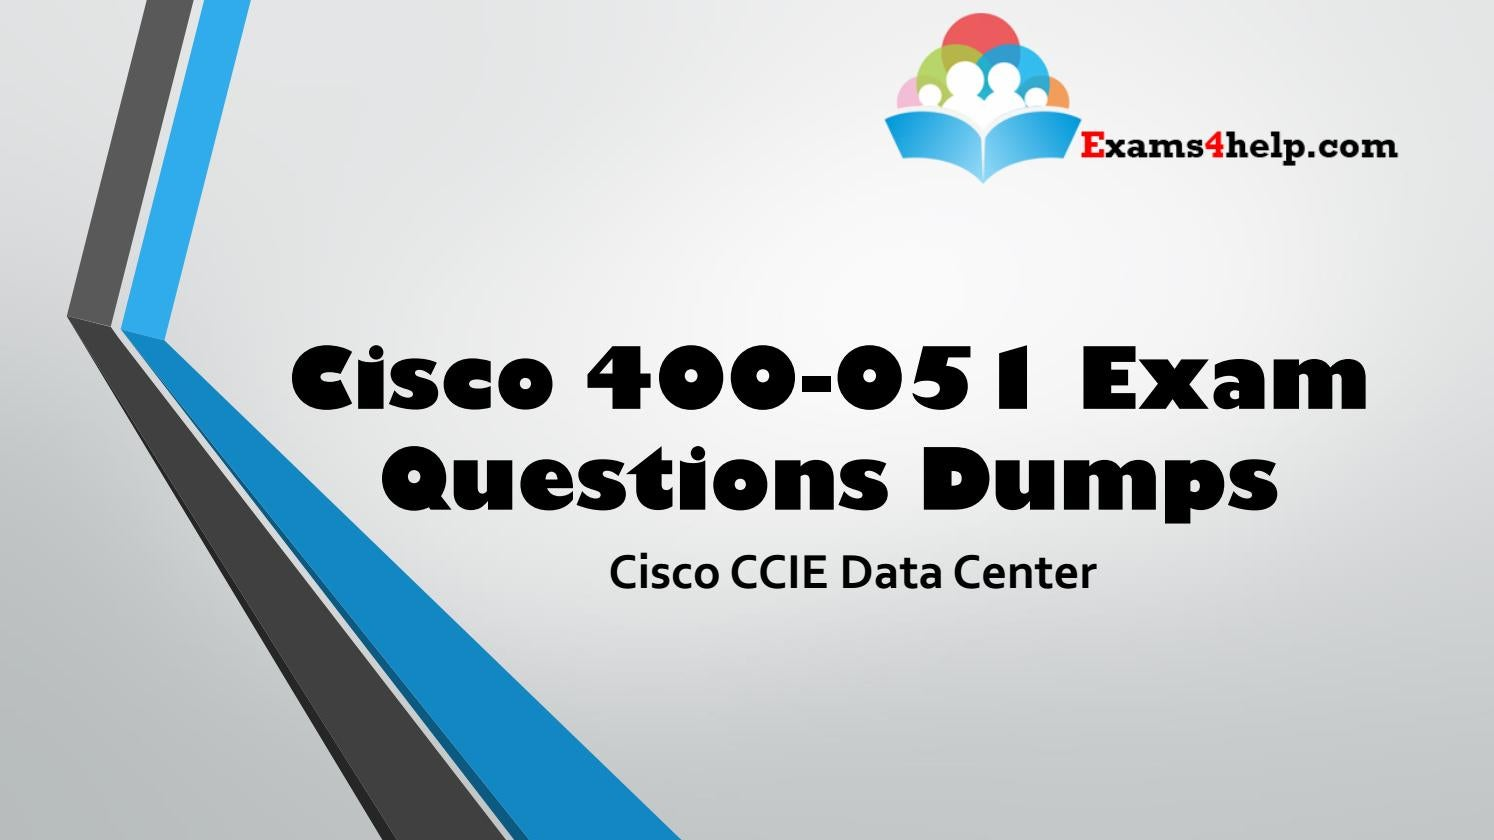 Cisco 400-051 Questions Answers by exams4help - issuu